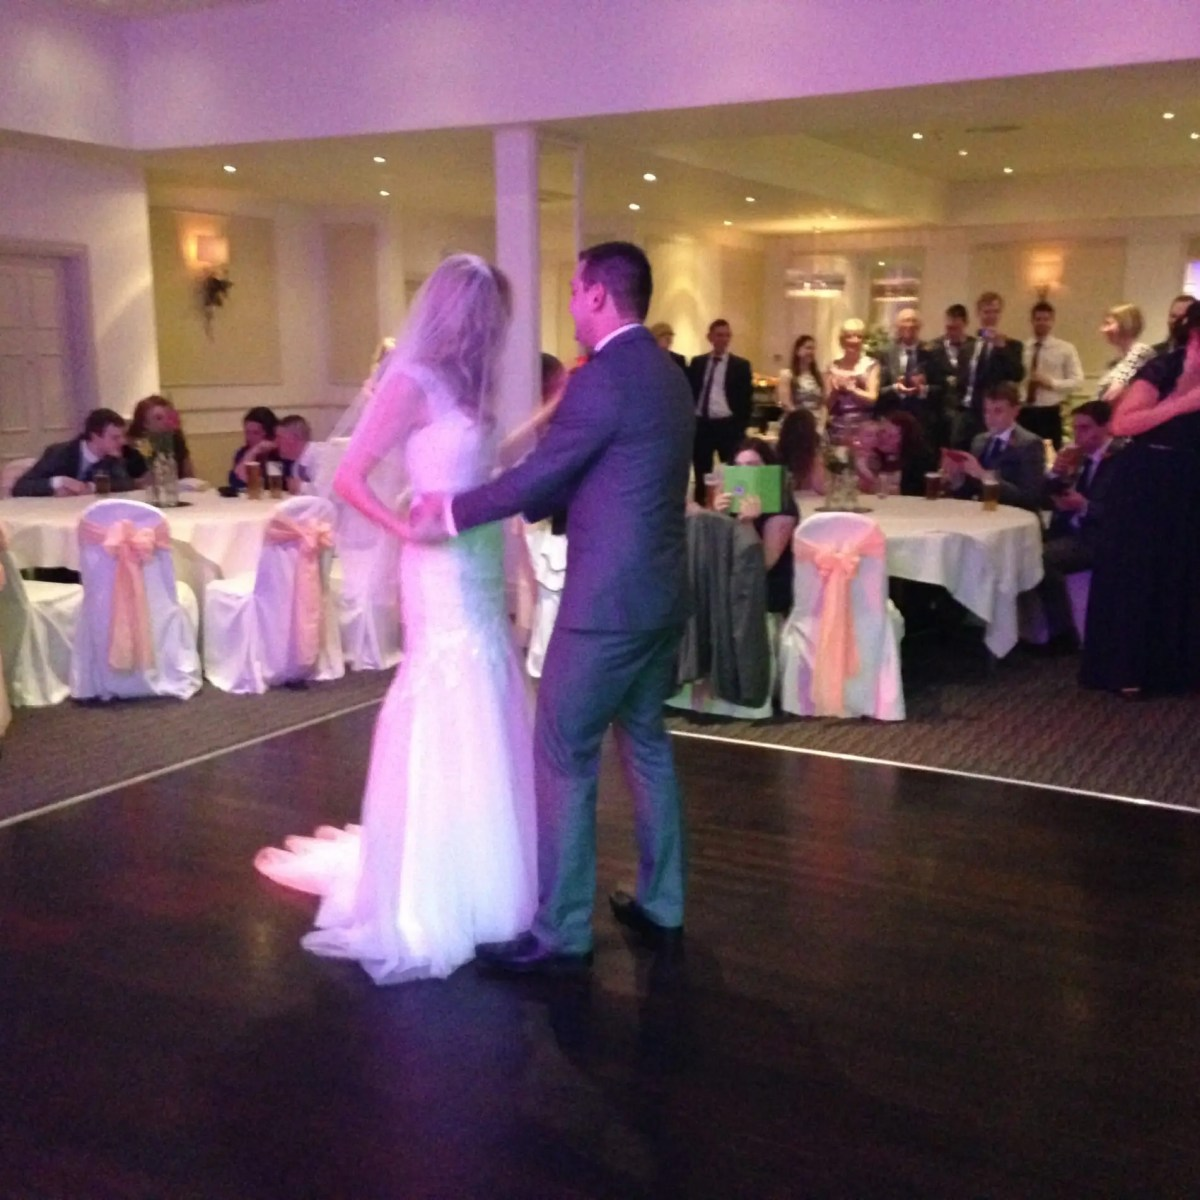 First Dance, The Zoots, Zoots band, Katie and Paul, The Clifton Arms Lytham, Wedding at Clifton Arms, Wedding band Lancashire, Wedding band Wiltshire, Wedding band Berkshire, Wedding band Somerset, Wedding band Bristol, Wedding band Bath, sixities wedding band, The Zoots Band, Jamie Goddard